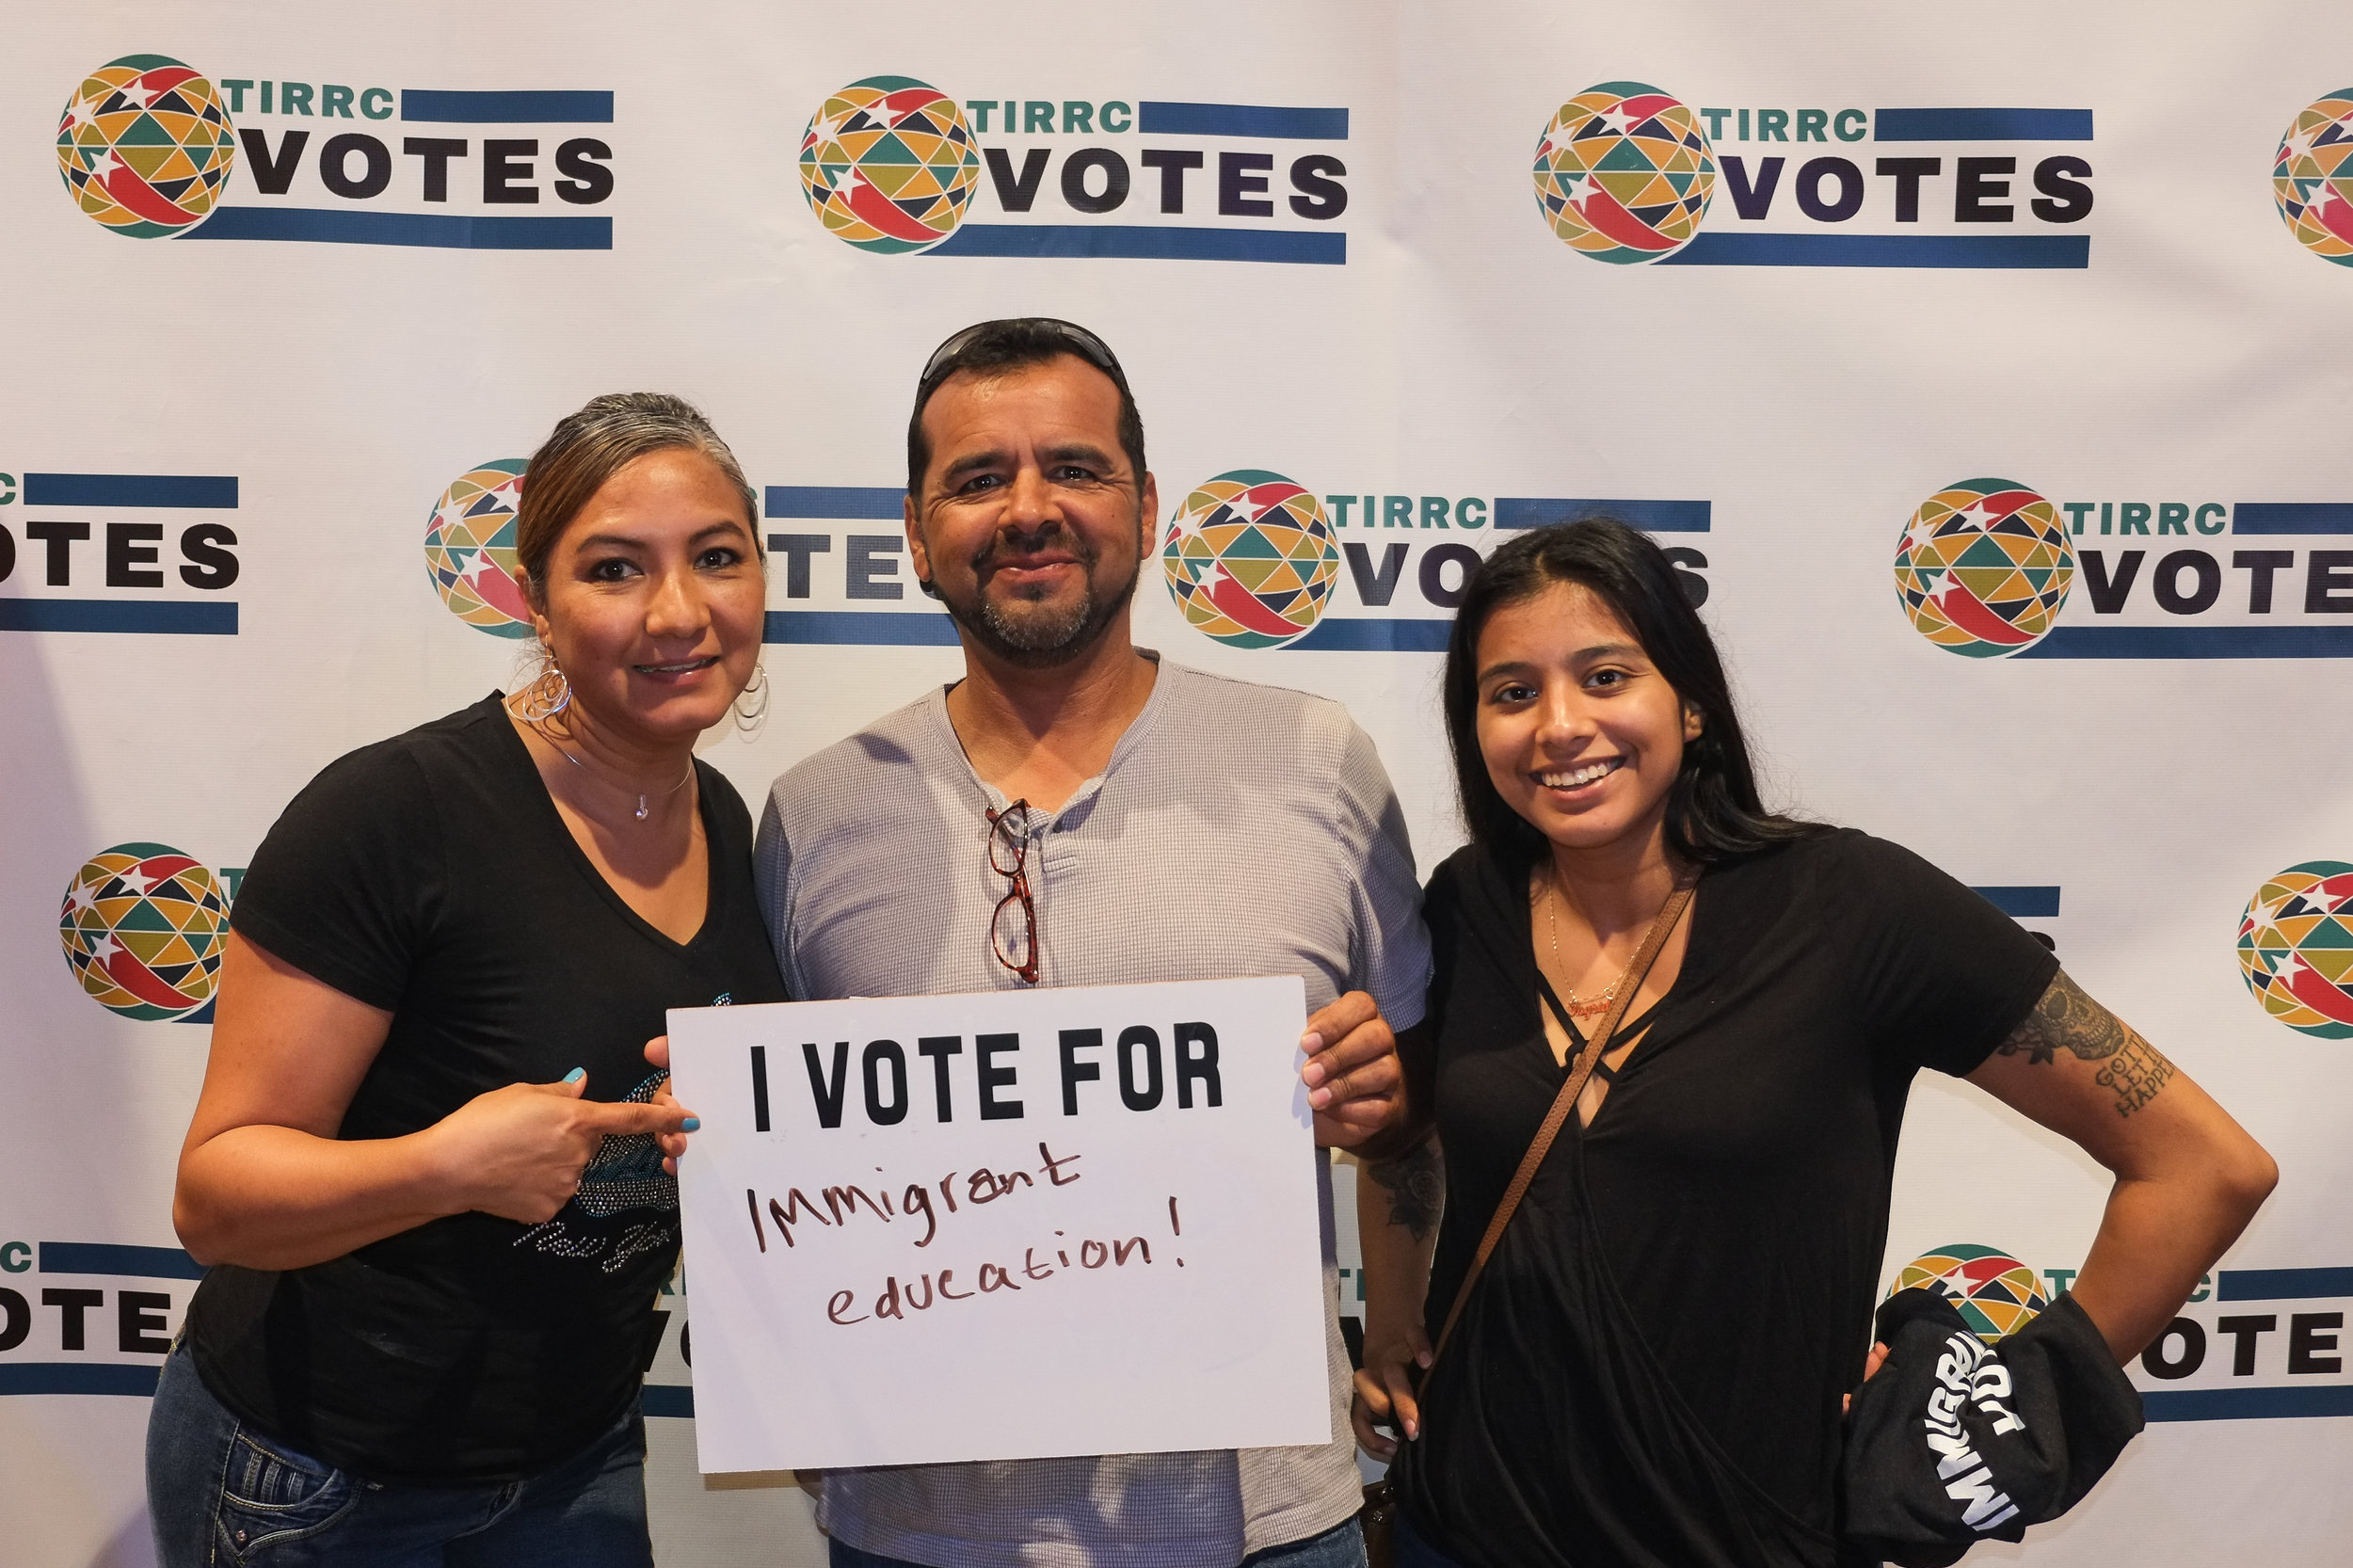 TIRRCVotes-PhotoBooth-68.jpg